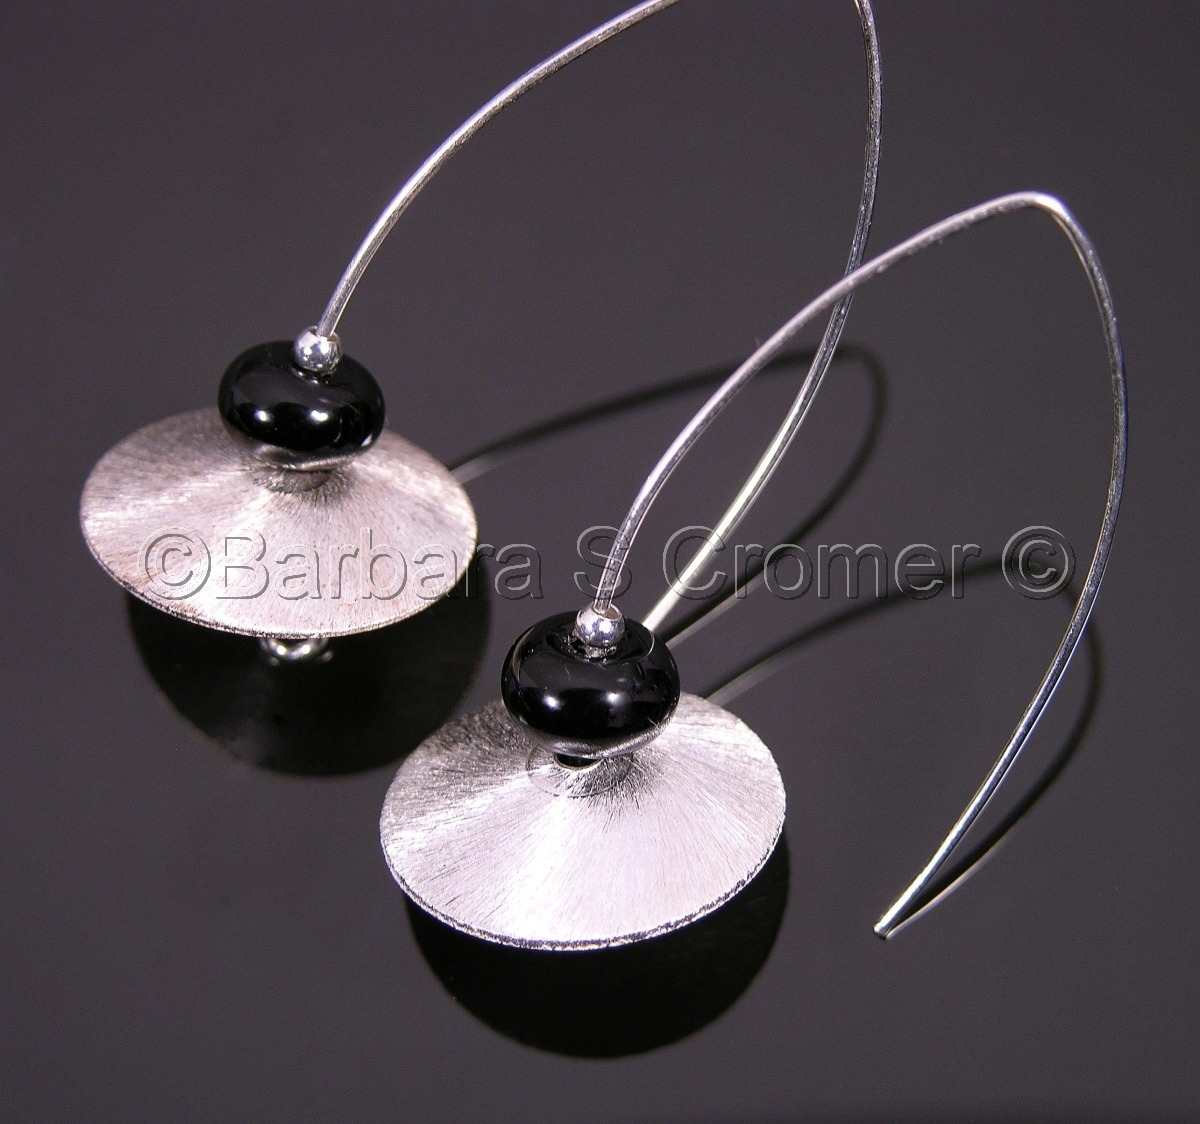 brushed Sterling silver saucers, topped with black Venetian lamp work, and suspended on handmade, Sterling silver arc wires, to create simple, elegant earrings. (large view)